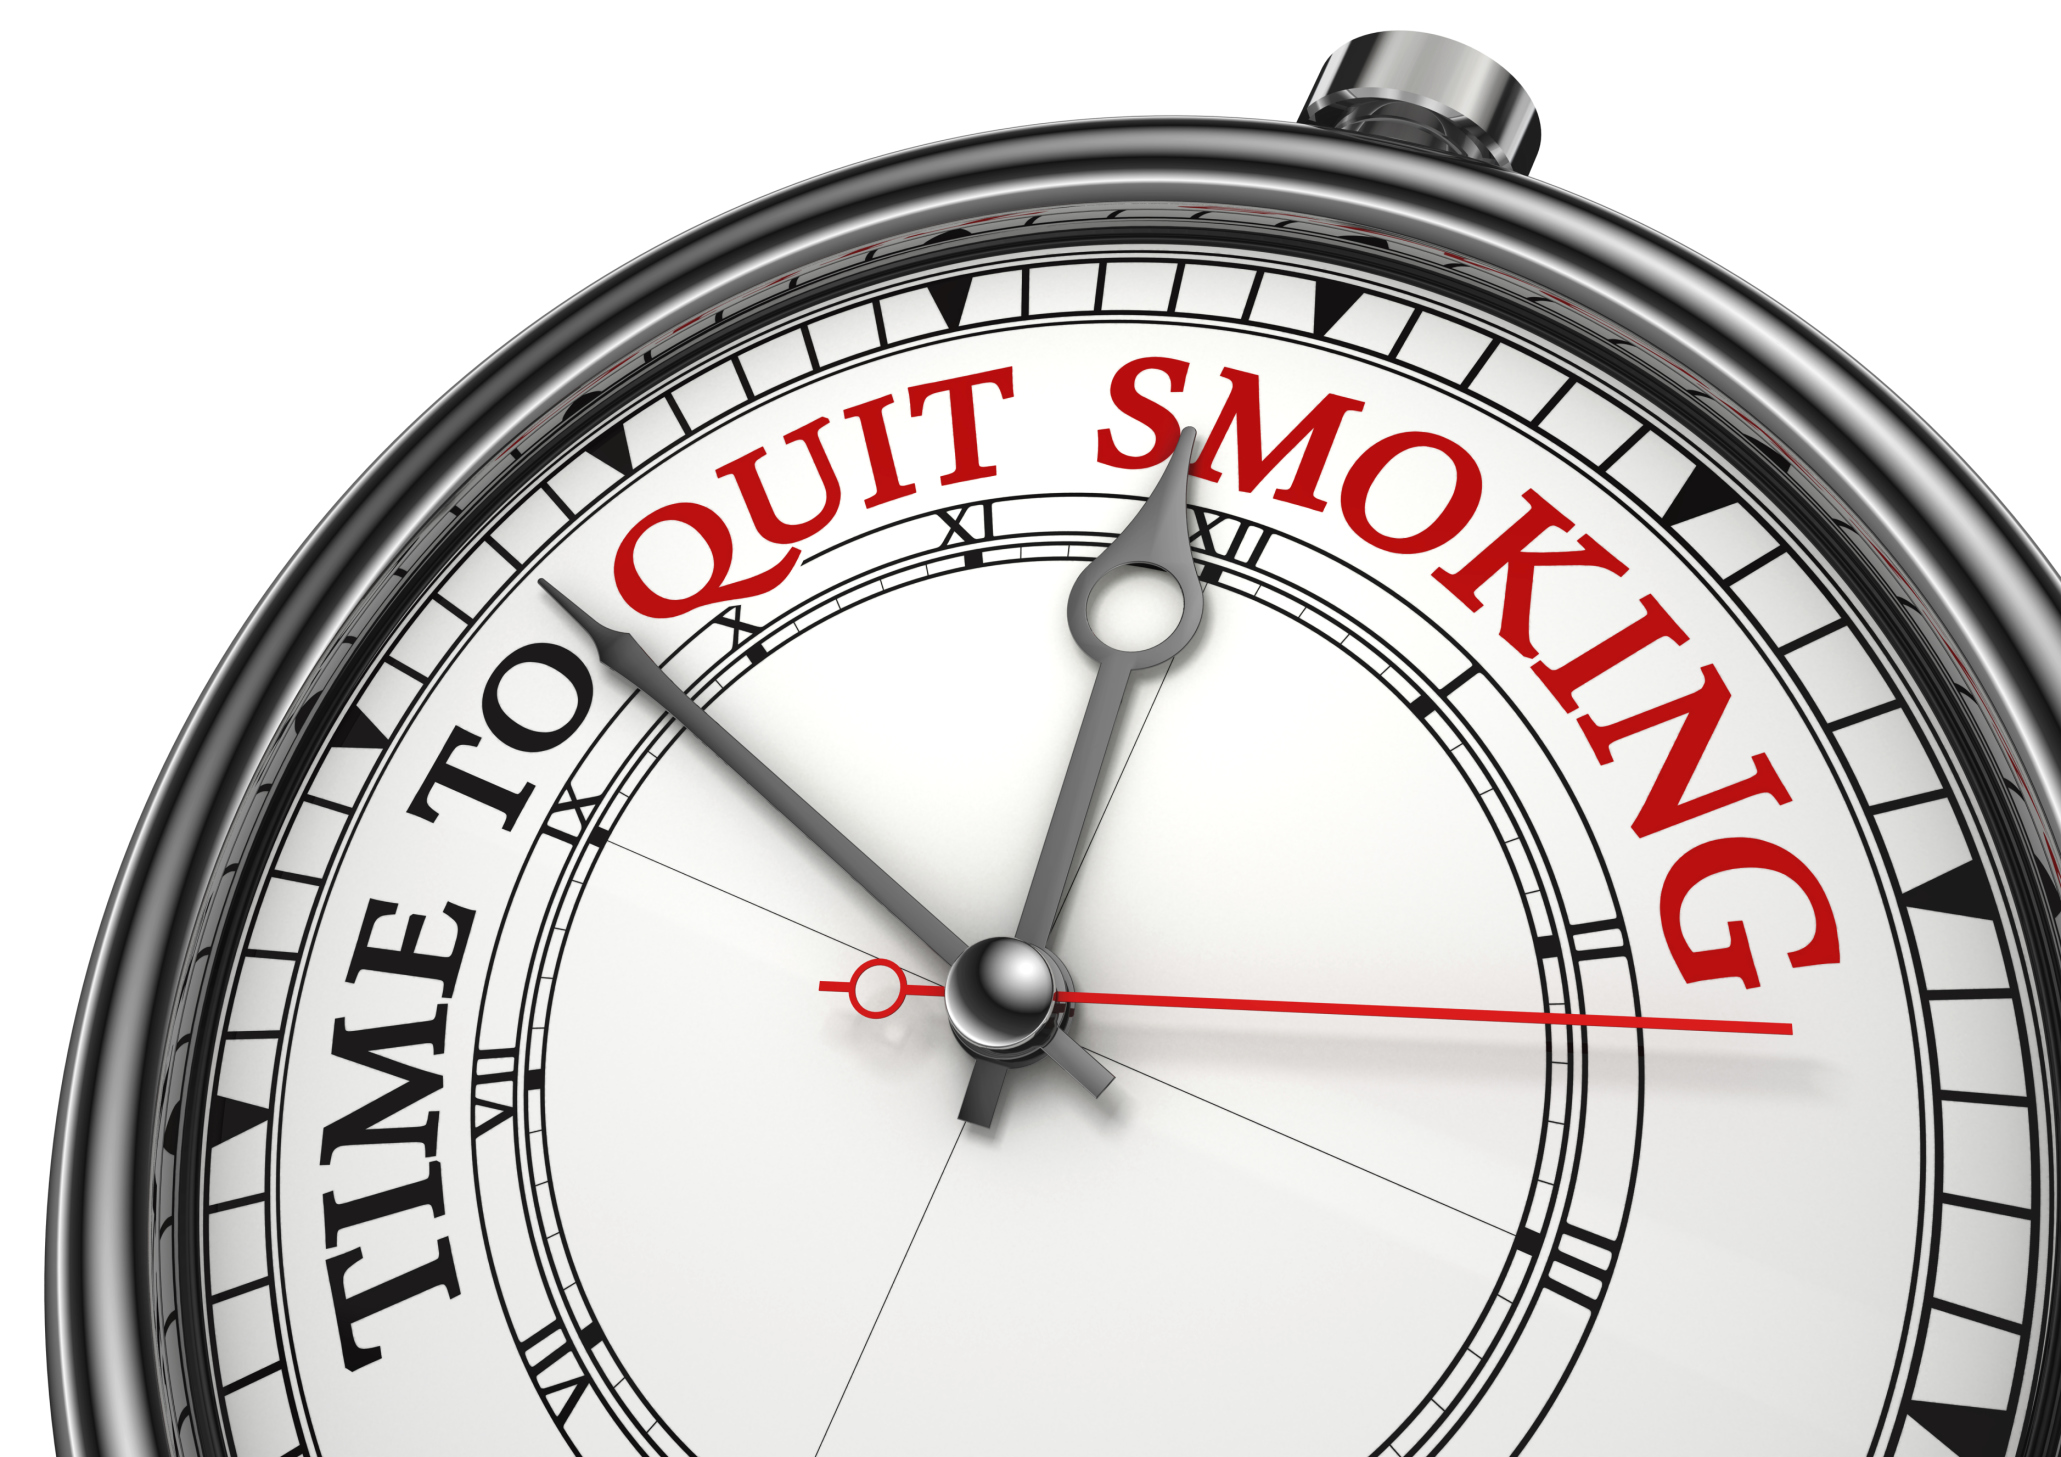 Quit Smoking now with help from Hypnotherapy